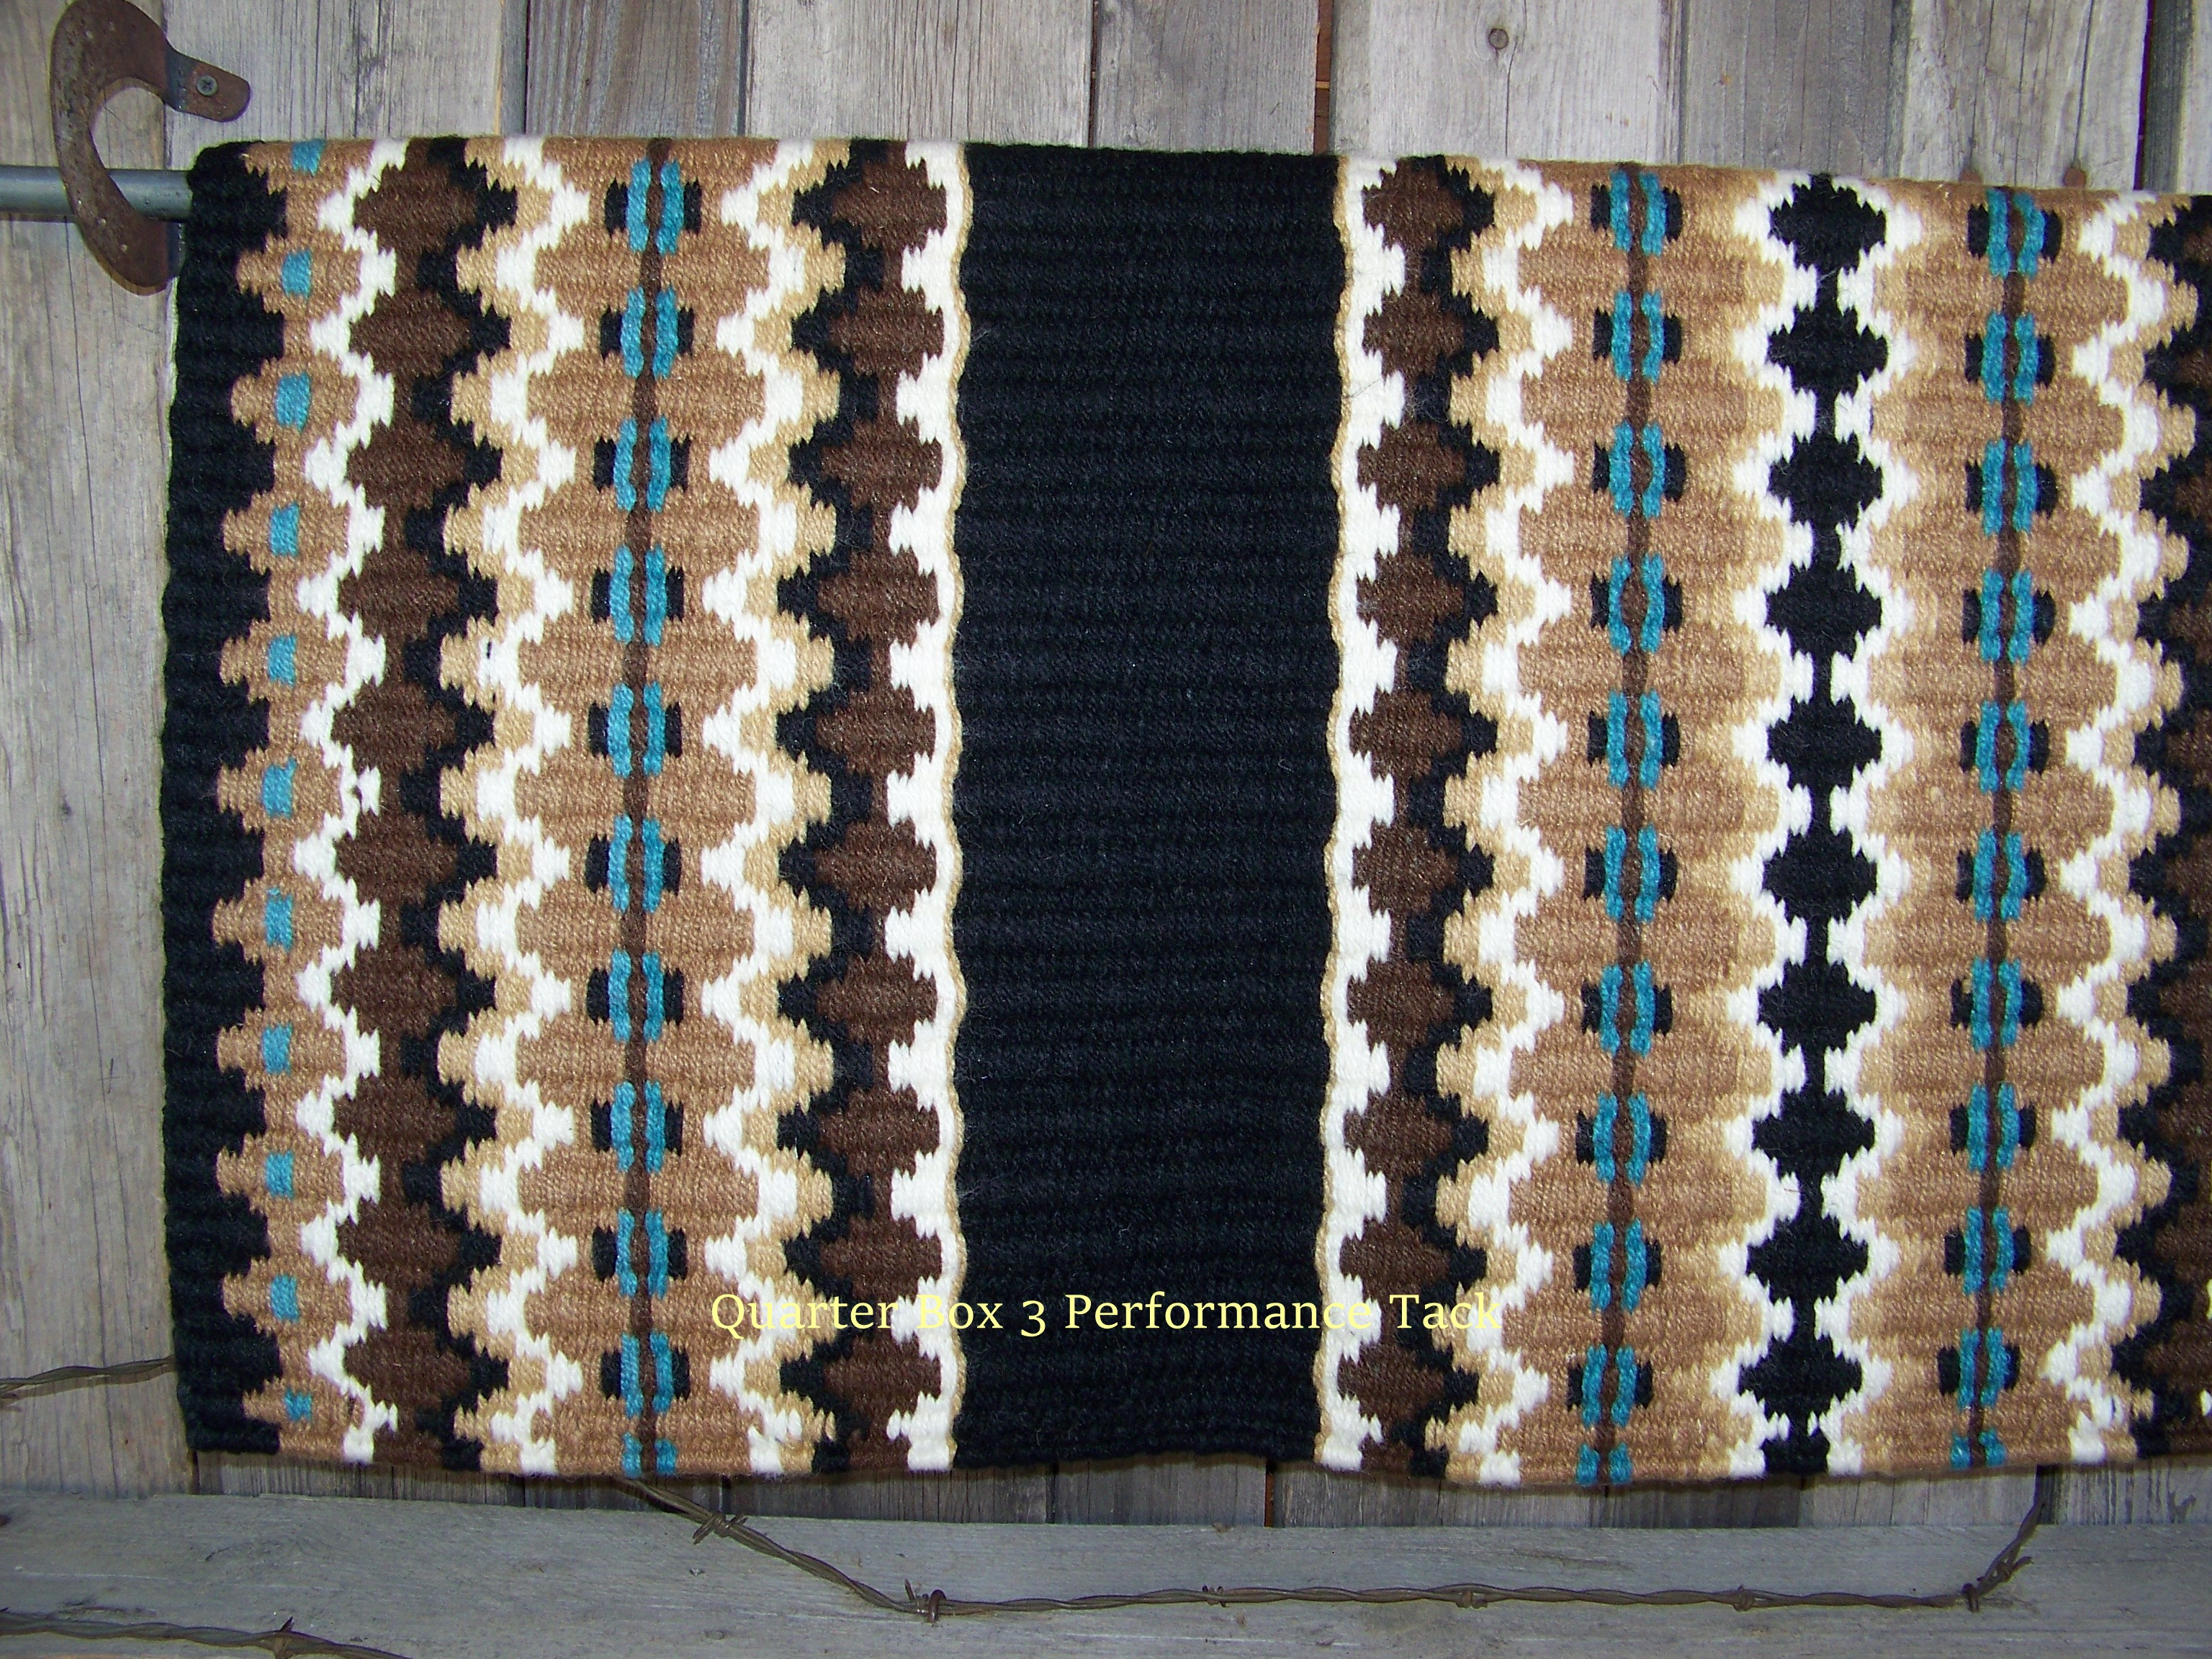 Details about  /Branding Iron Show Blanket 38x34 Fawn Base//Chest /& Sage Accents by Mayatex